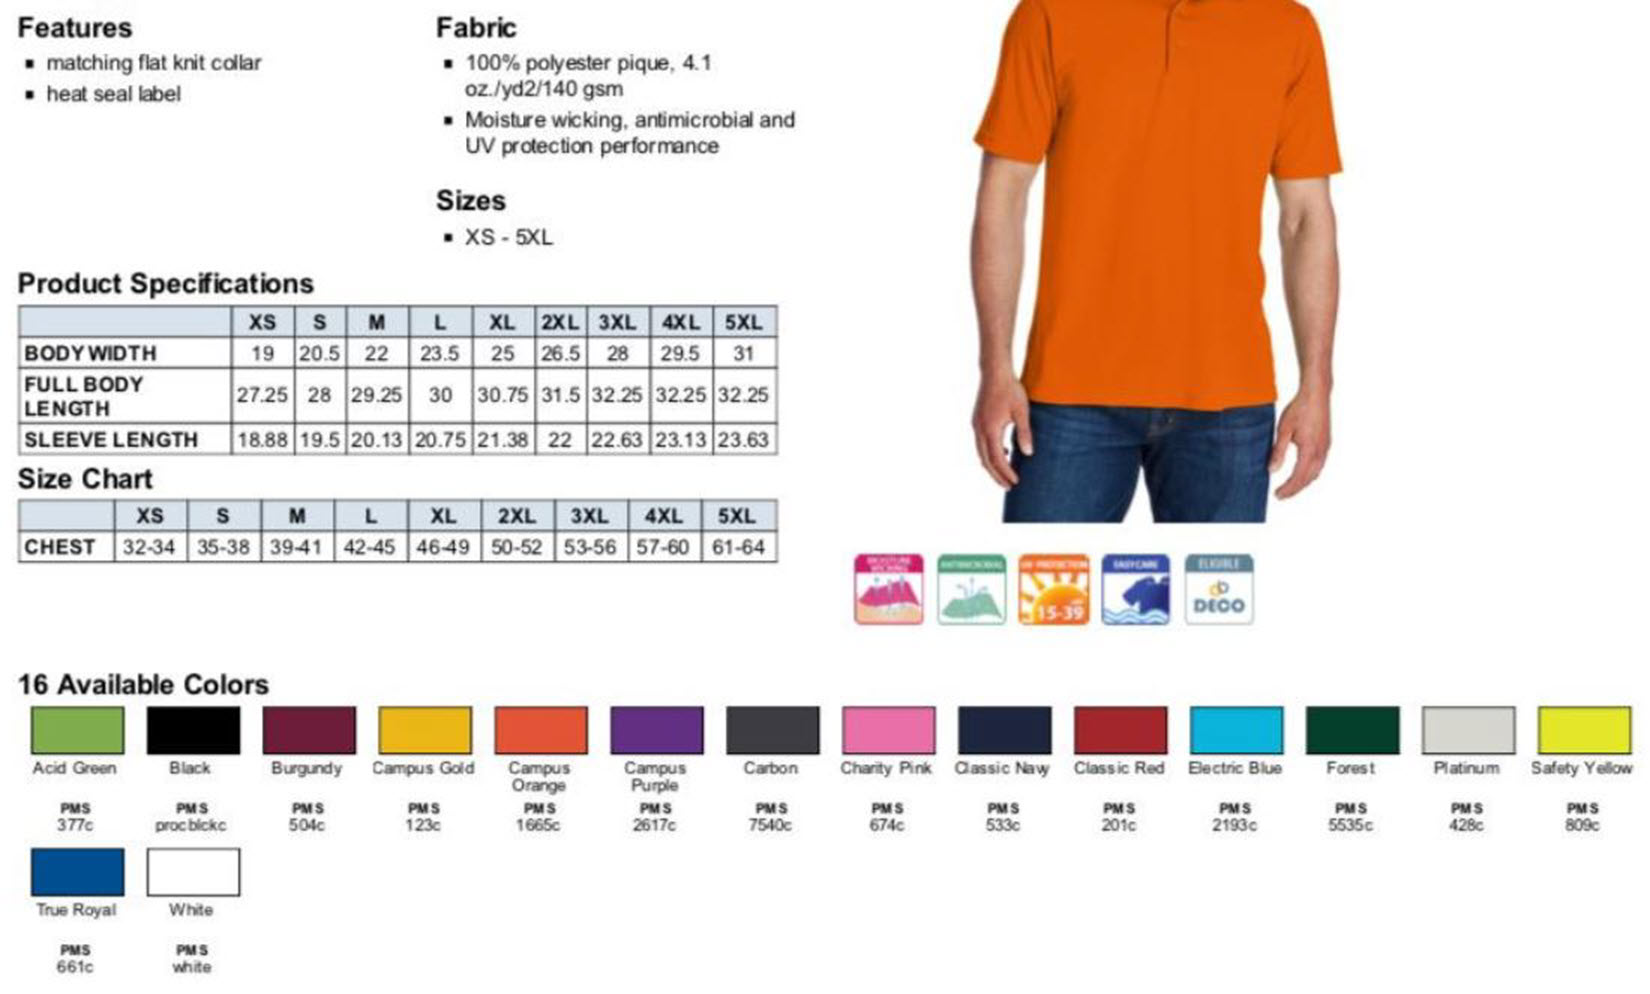 Shirt Sizes and Colors